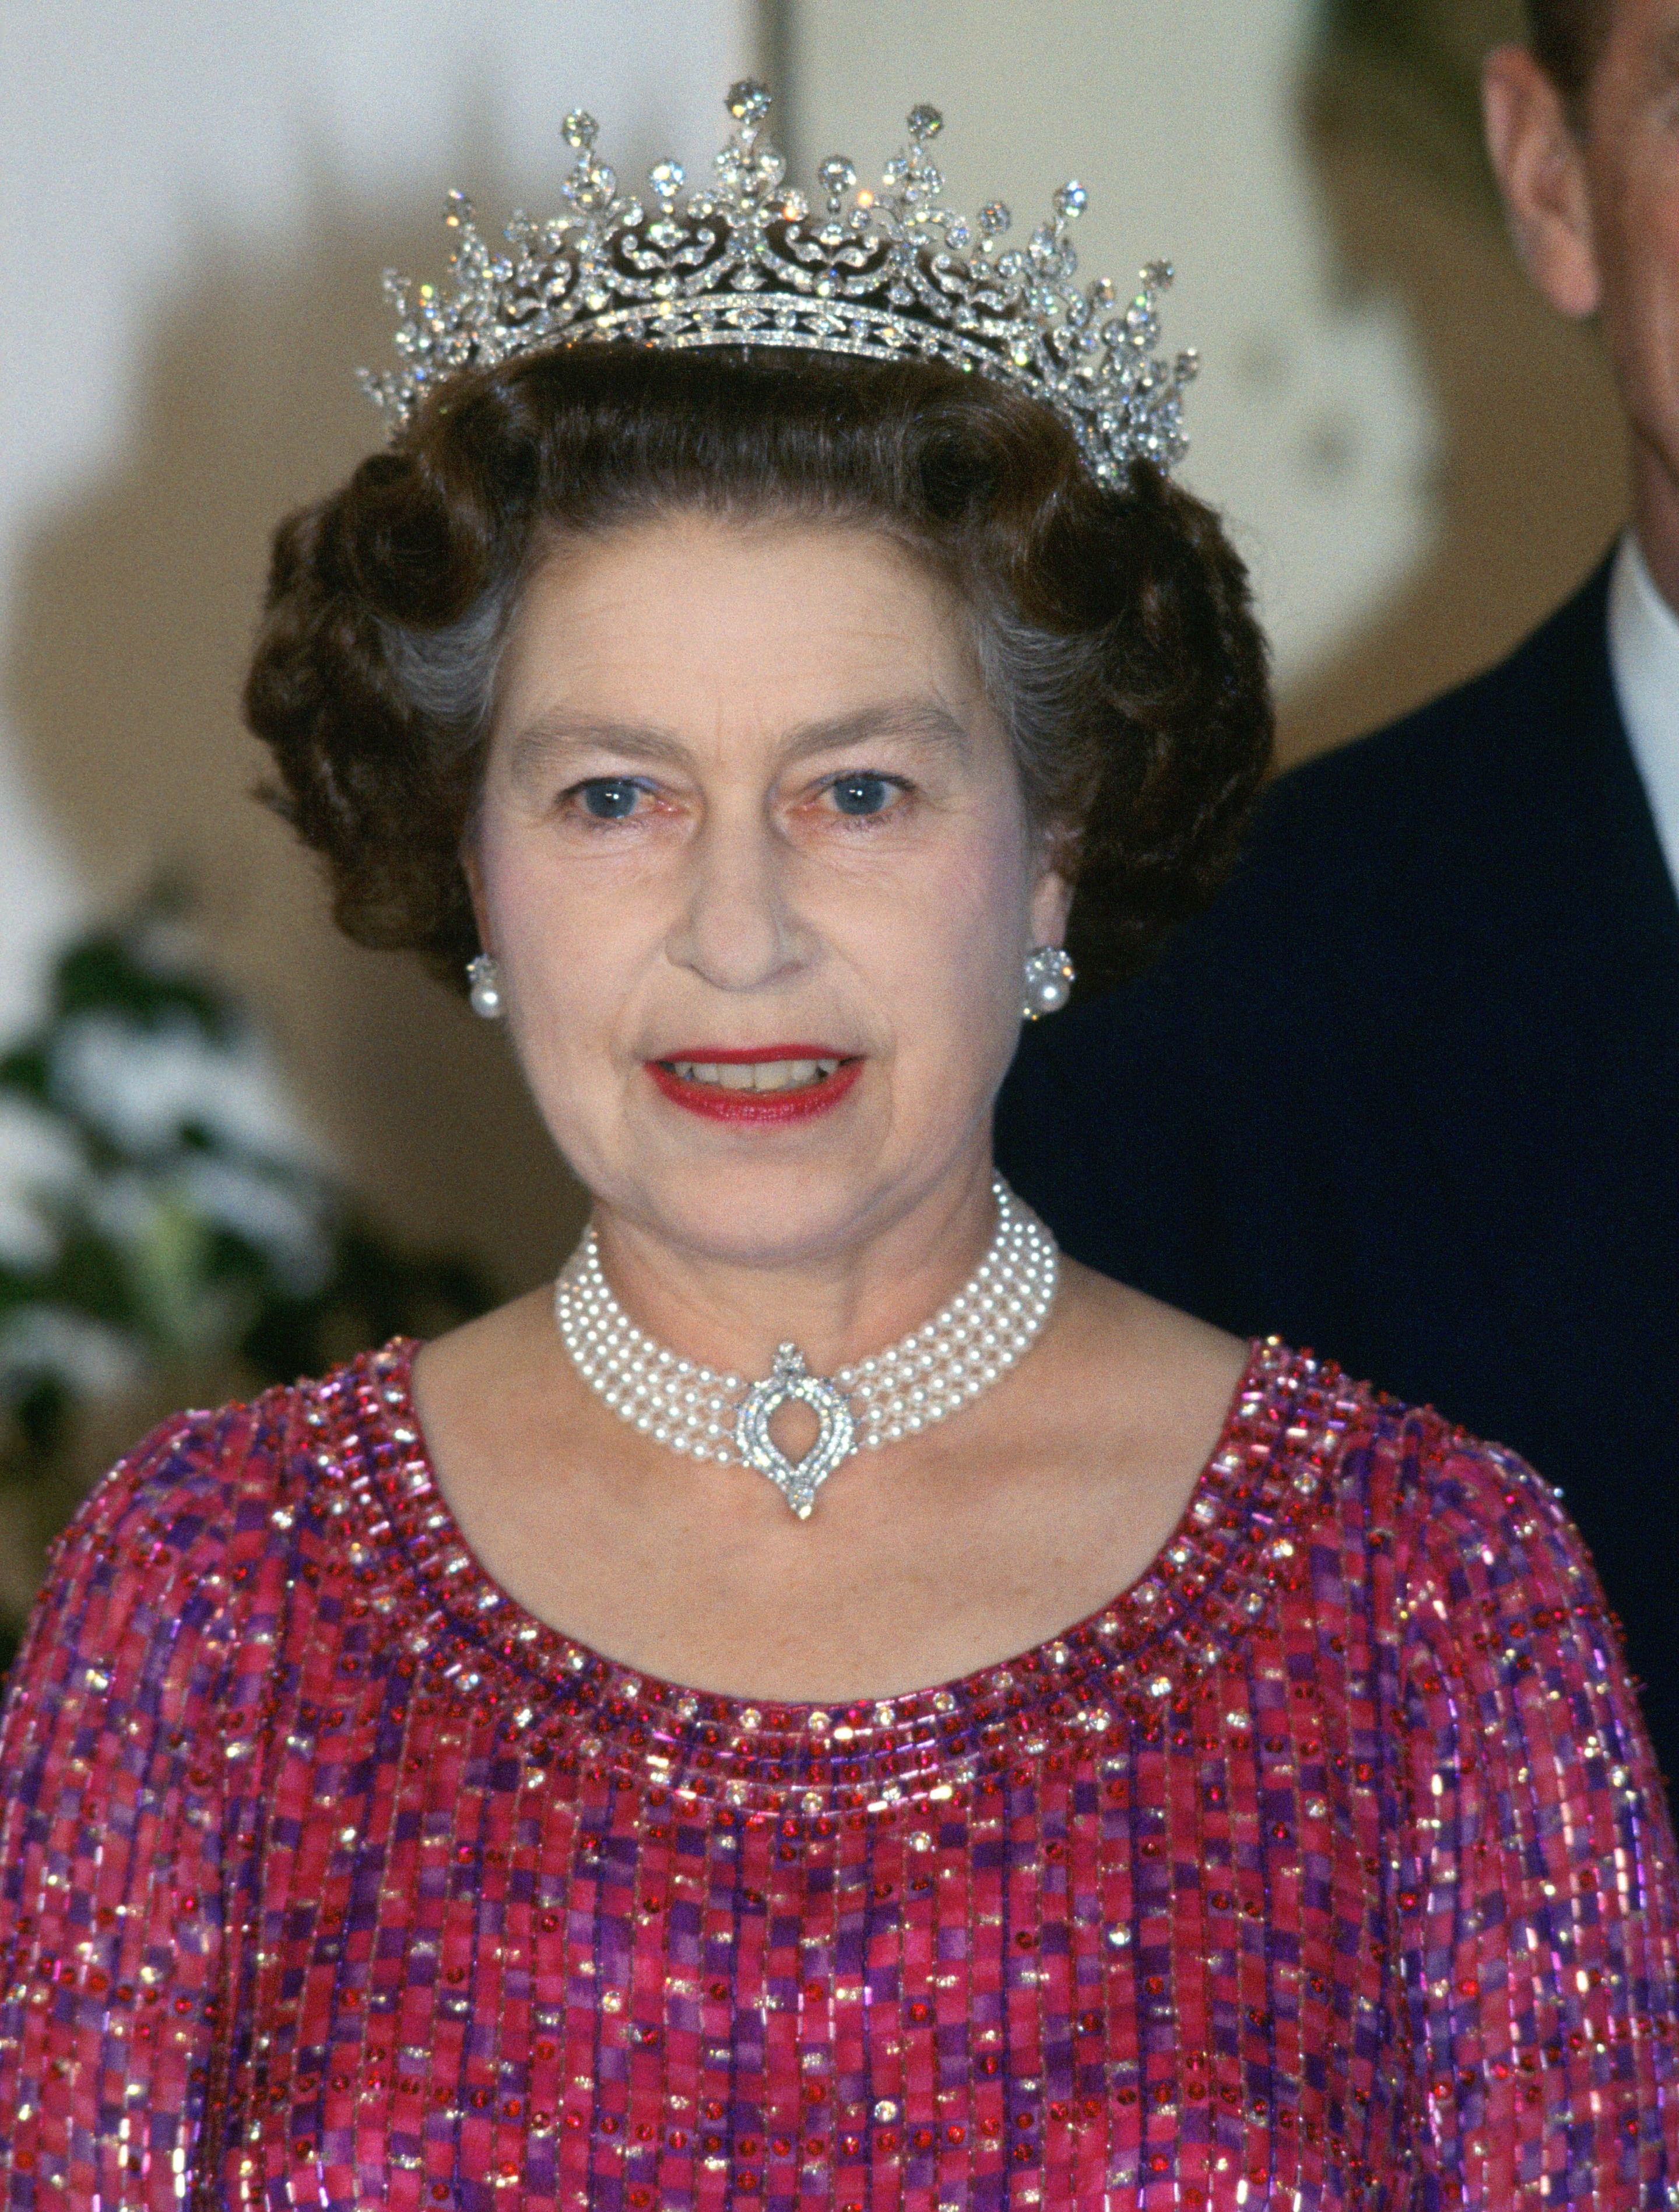 Queen Elizabeth II wearing the pearl and diamond choker to an engagement in Bangladesh in 1983